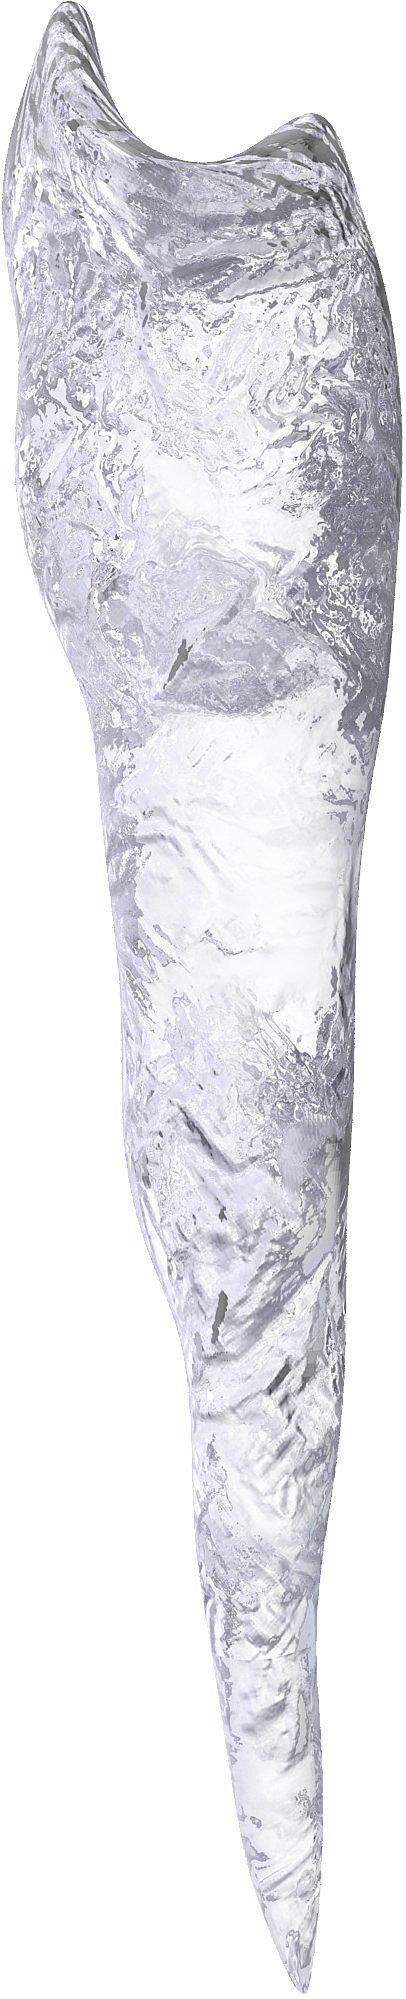 Icicles transparent one. Png image